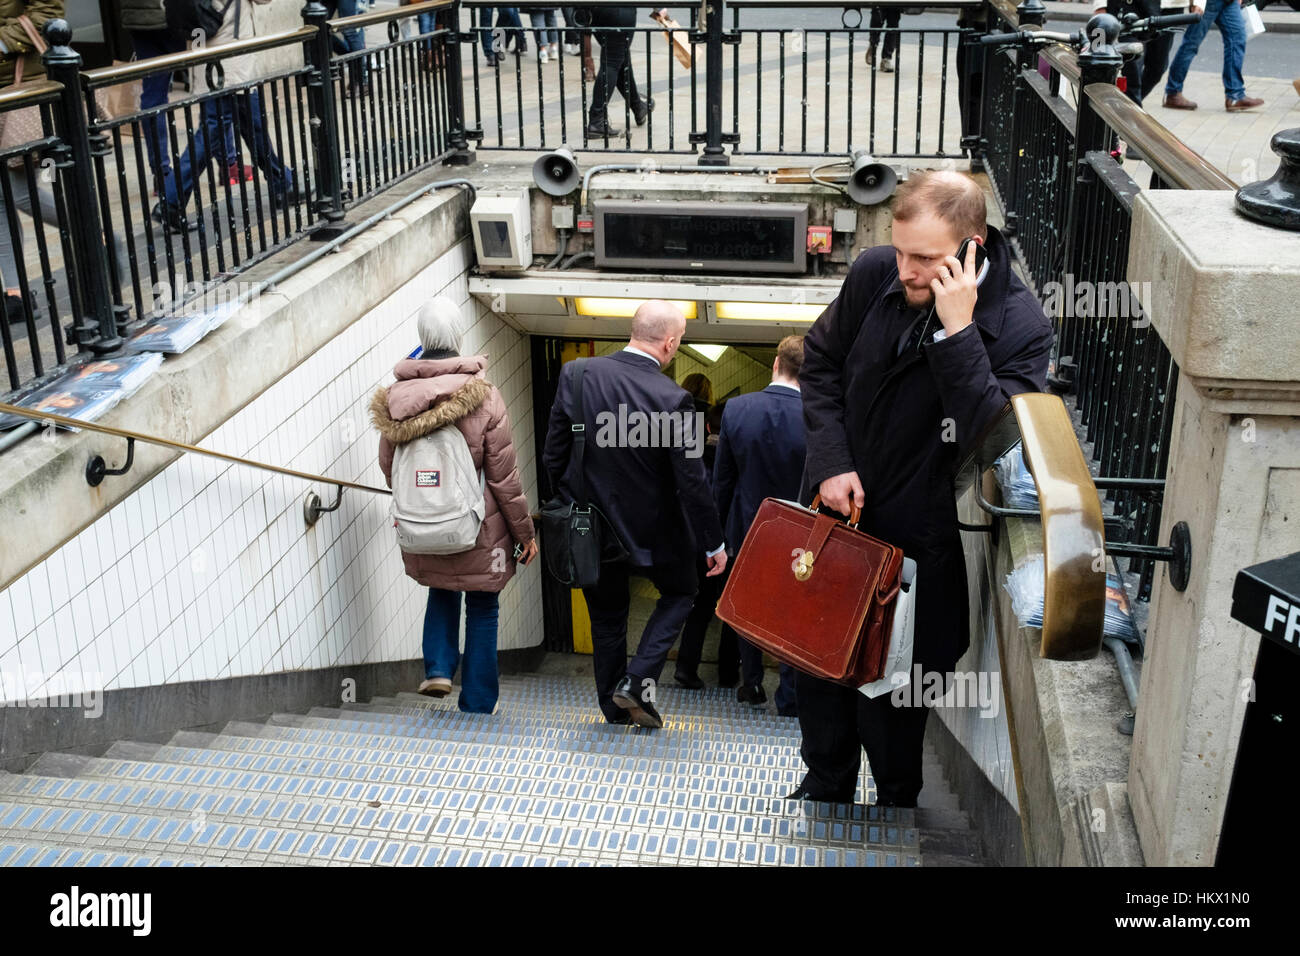 Man holding leather briefcase speaks on mobile phone at entrance to Oxford Circus underground station, London. UK - Stock Image